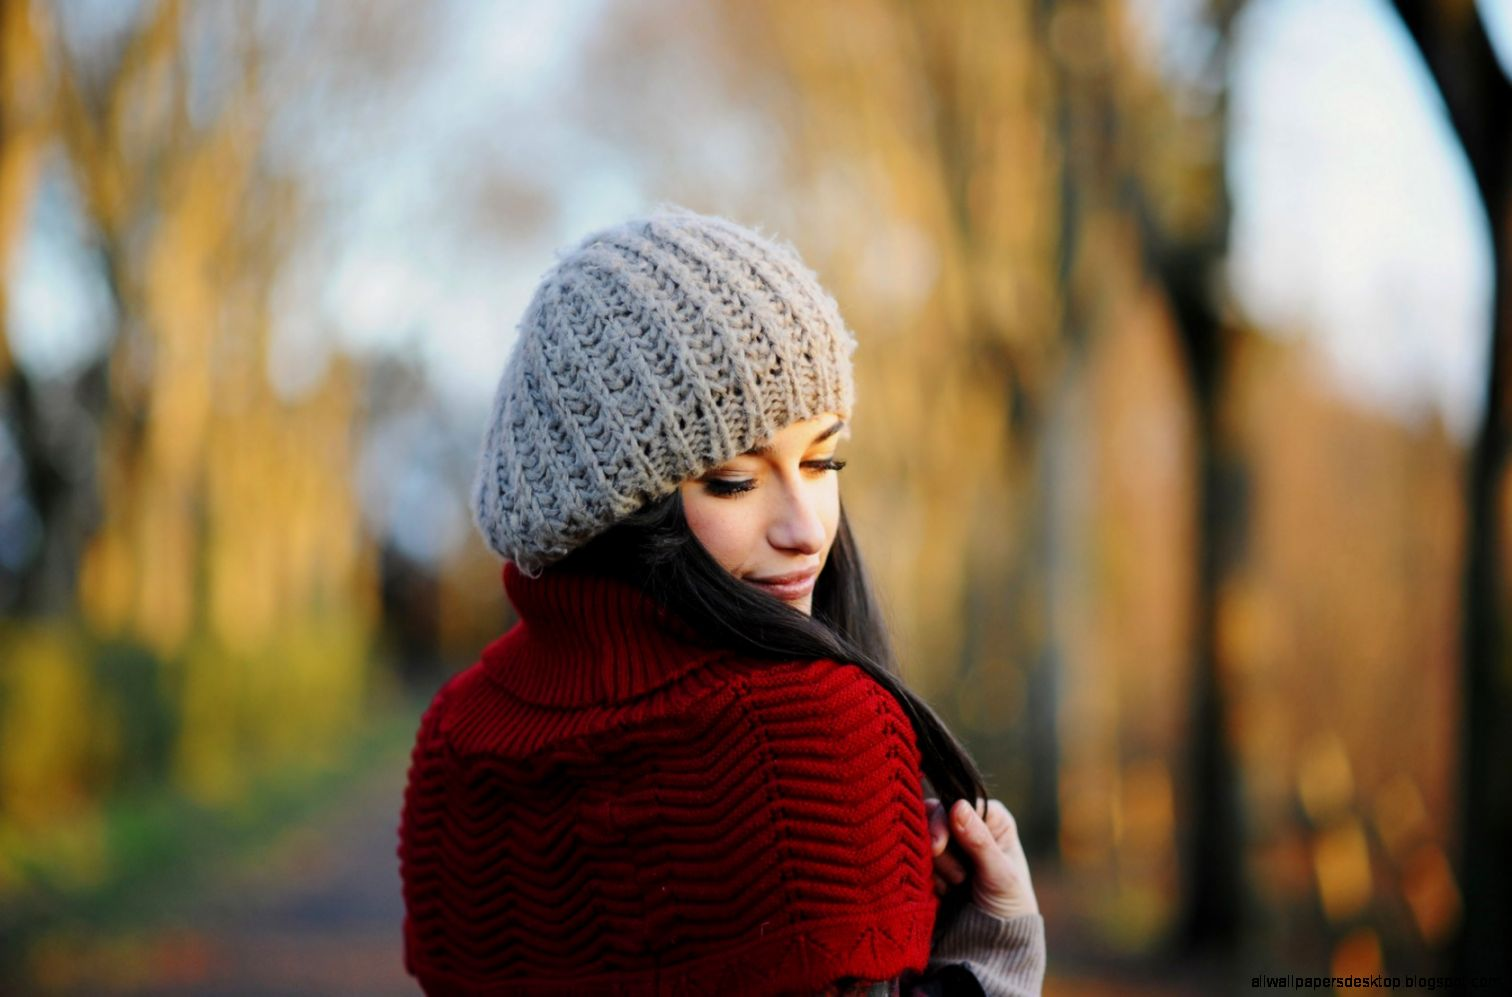 Girl Hat Sweater Bokeh HD Wallpaper   FreeWallsUp